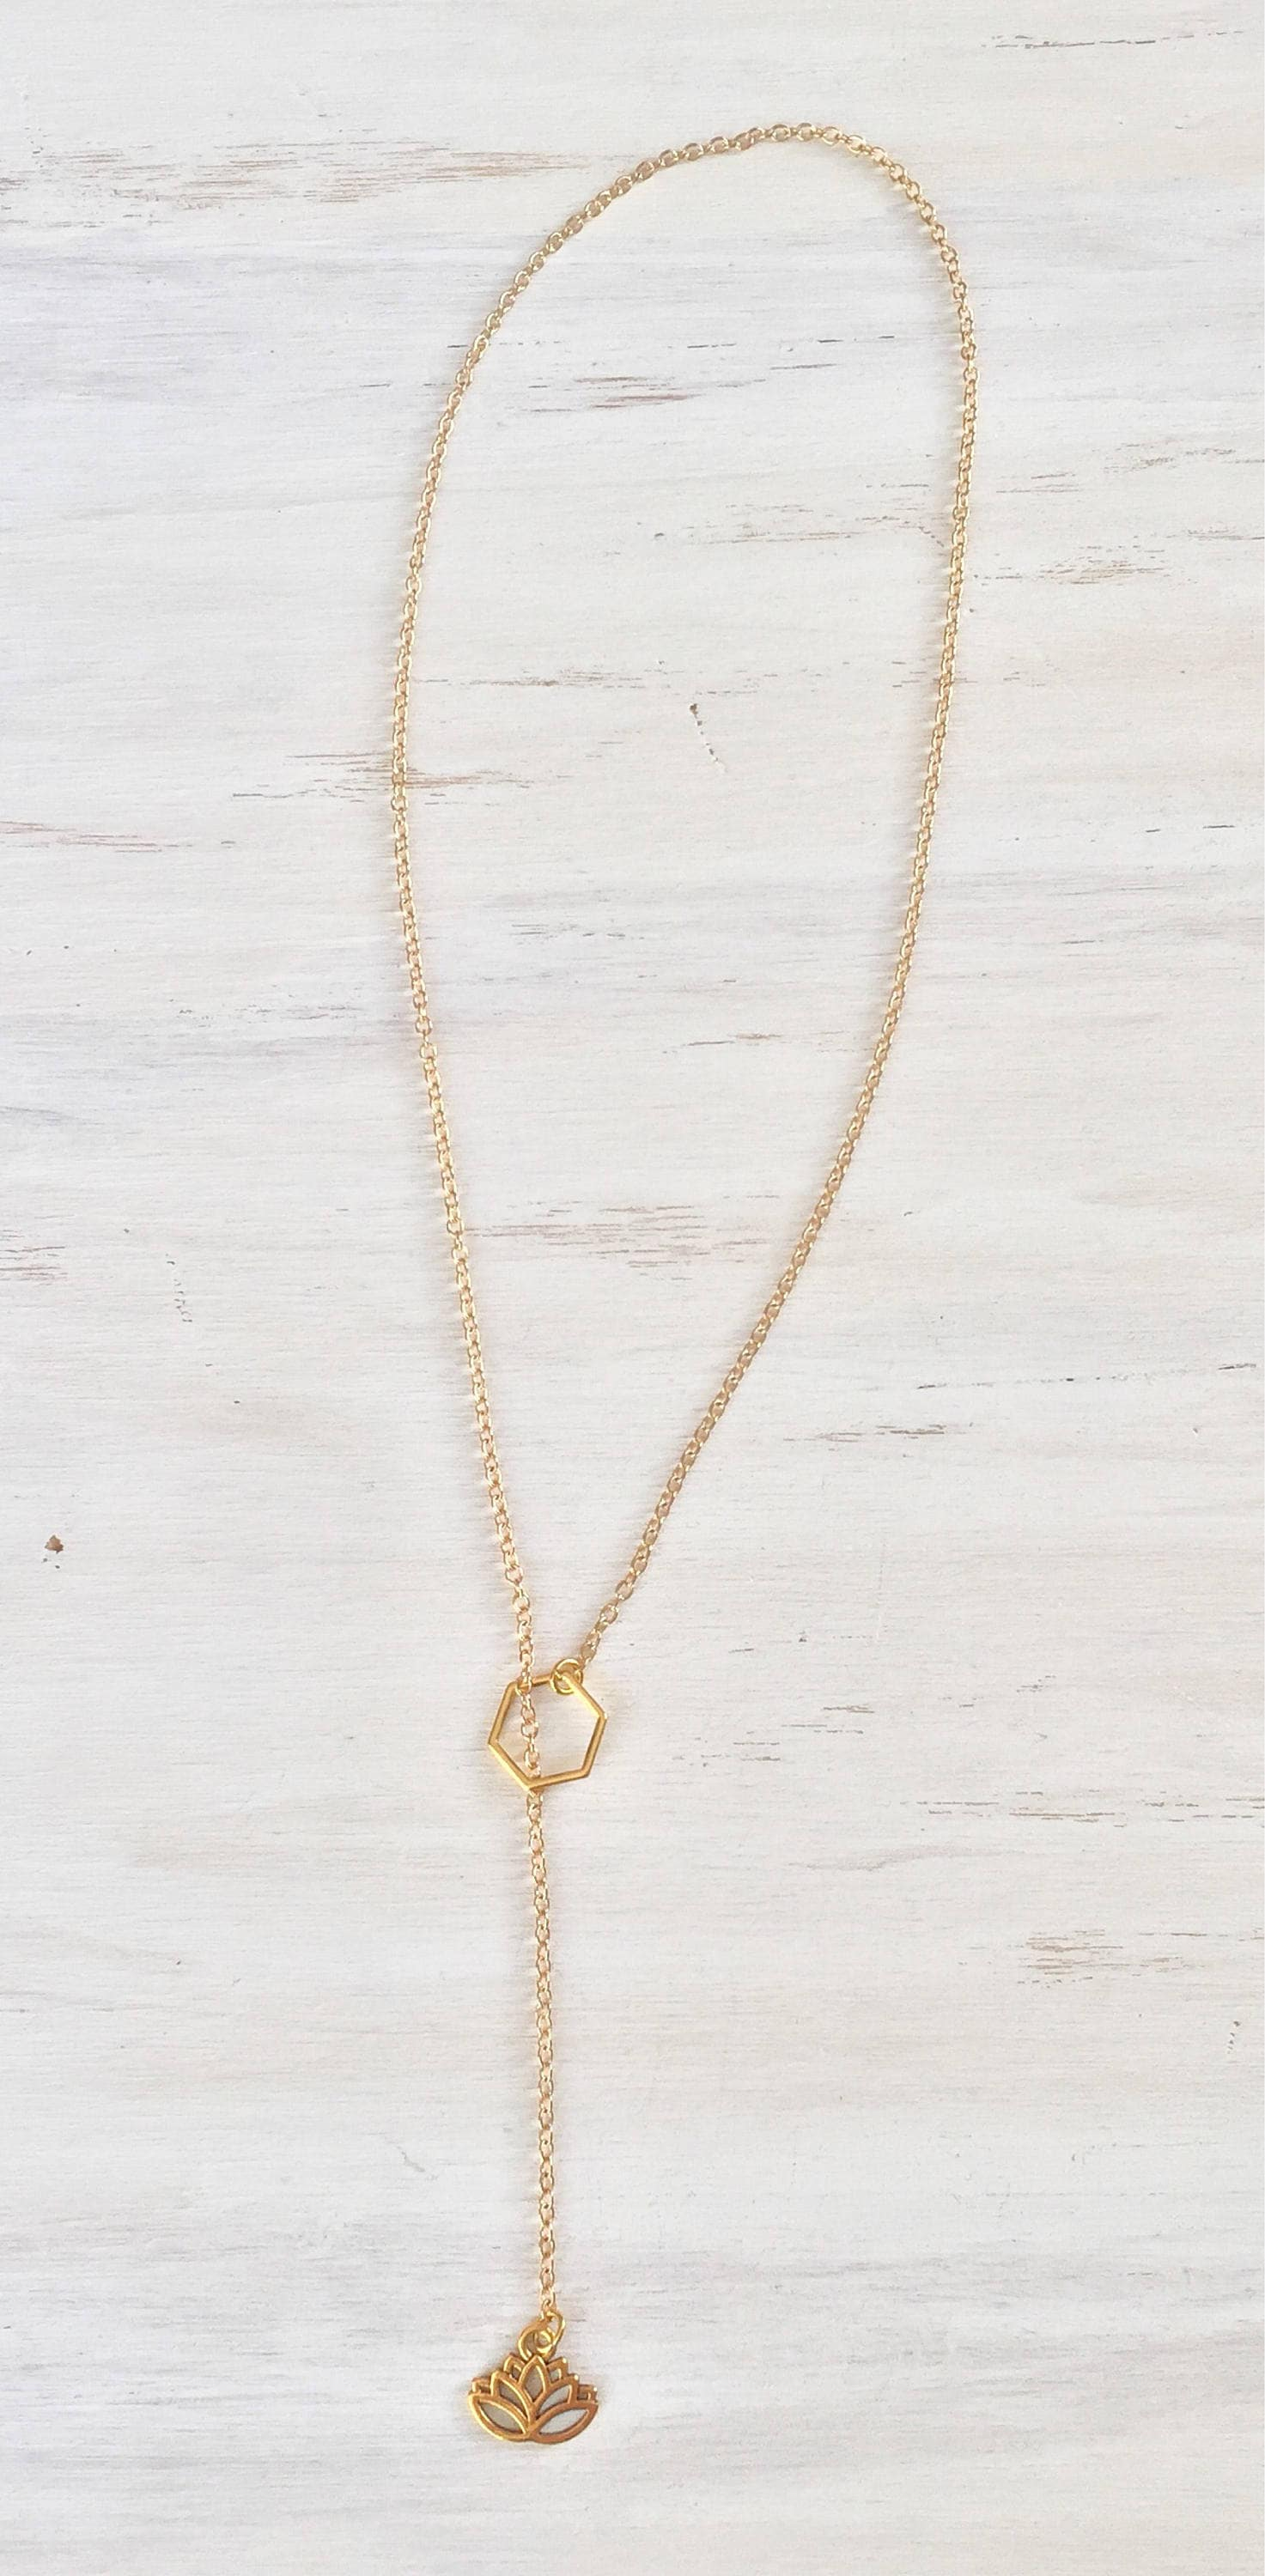 Gold Lotus Flower Slip On Lariat Necklace Y Necklace Long Necklace